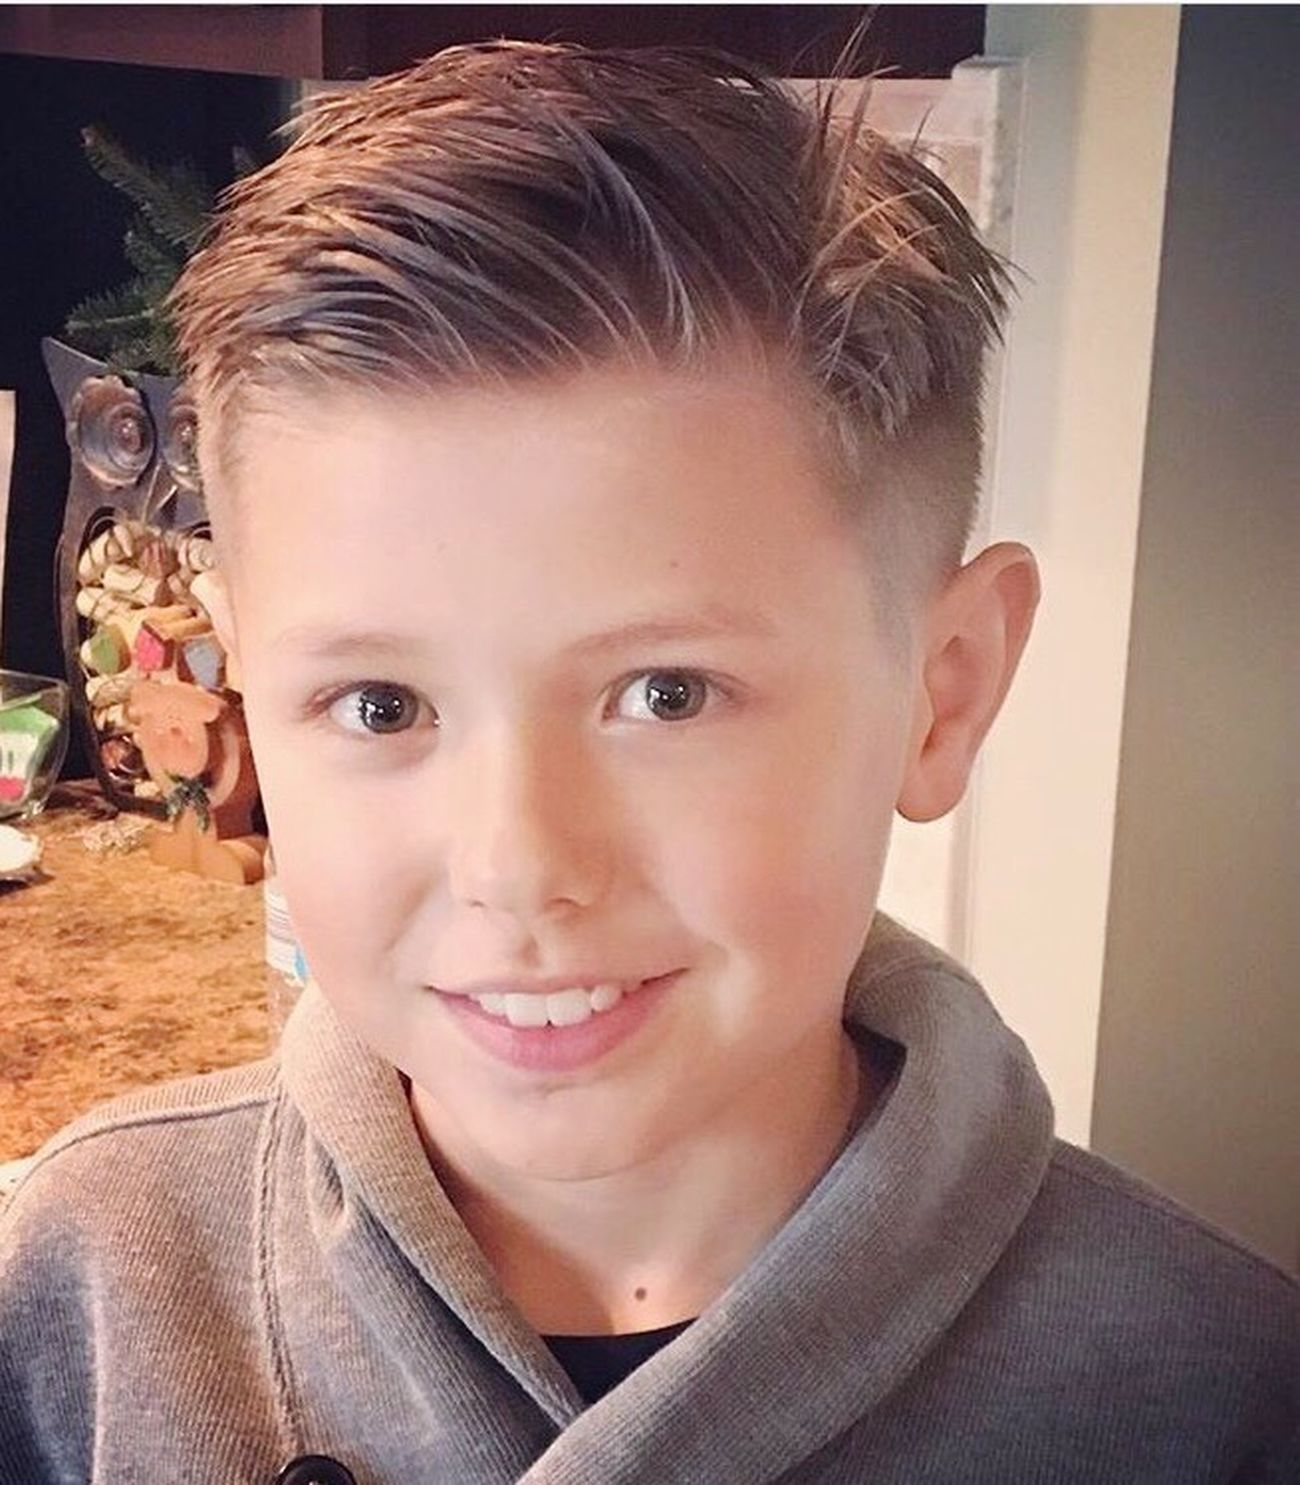 My nephew got a new haircut. Child One Person Childhood Real People Nephew ♡ Beautiful Little Boy Haircut Nephewlove Children Only Happiness Enjoying Life Cute Love Them Family❤ Family Matters Family